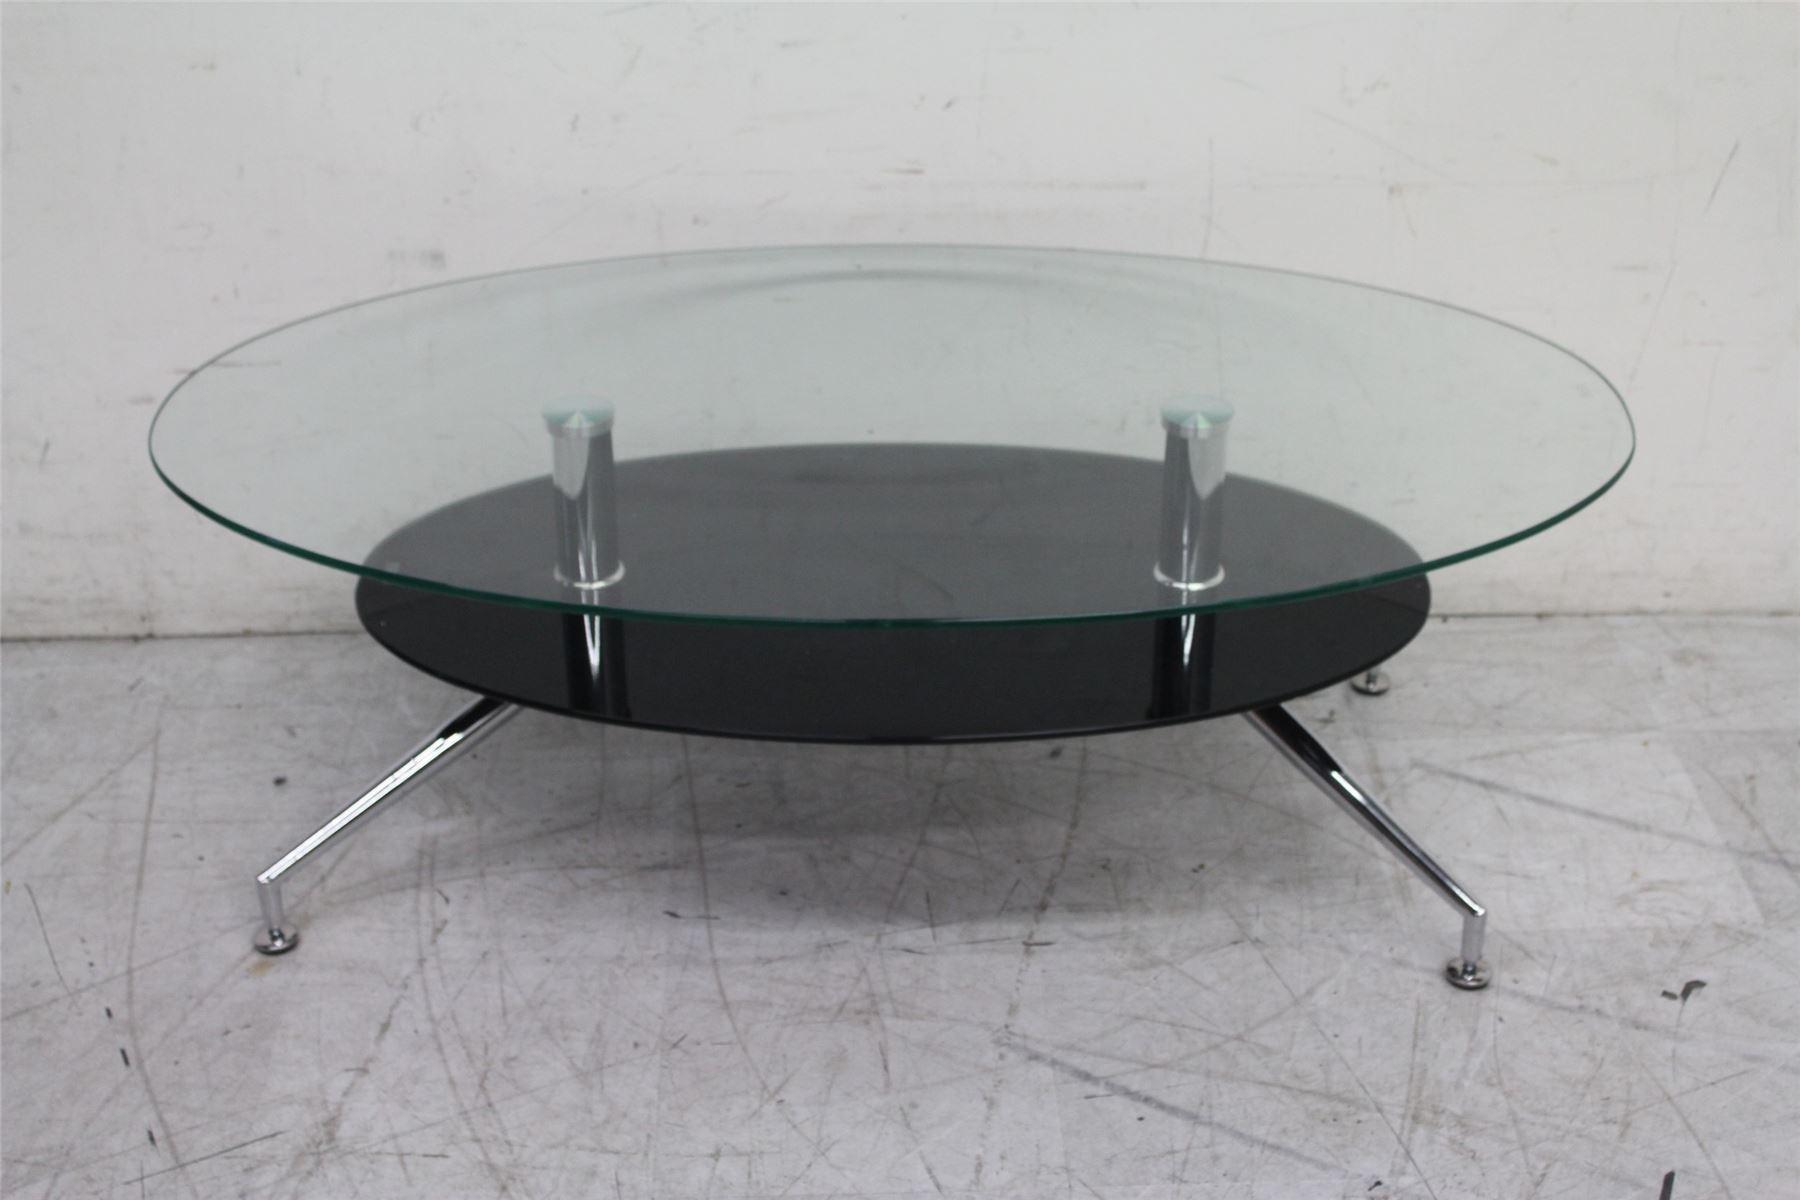 Modern Low Tempered Glass Coffee Oval Table With One Shelf And Four